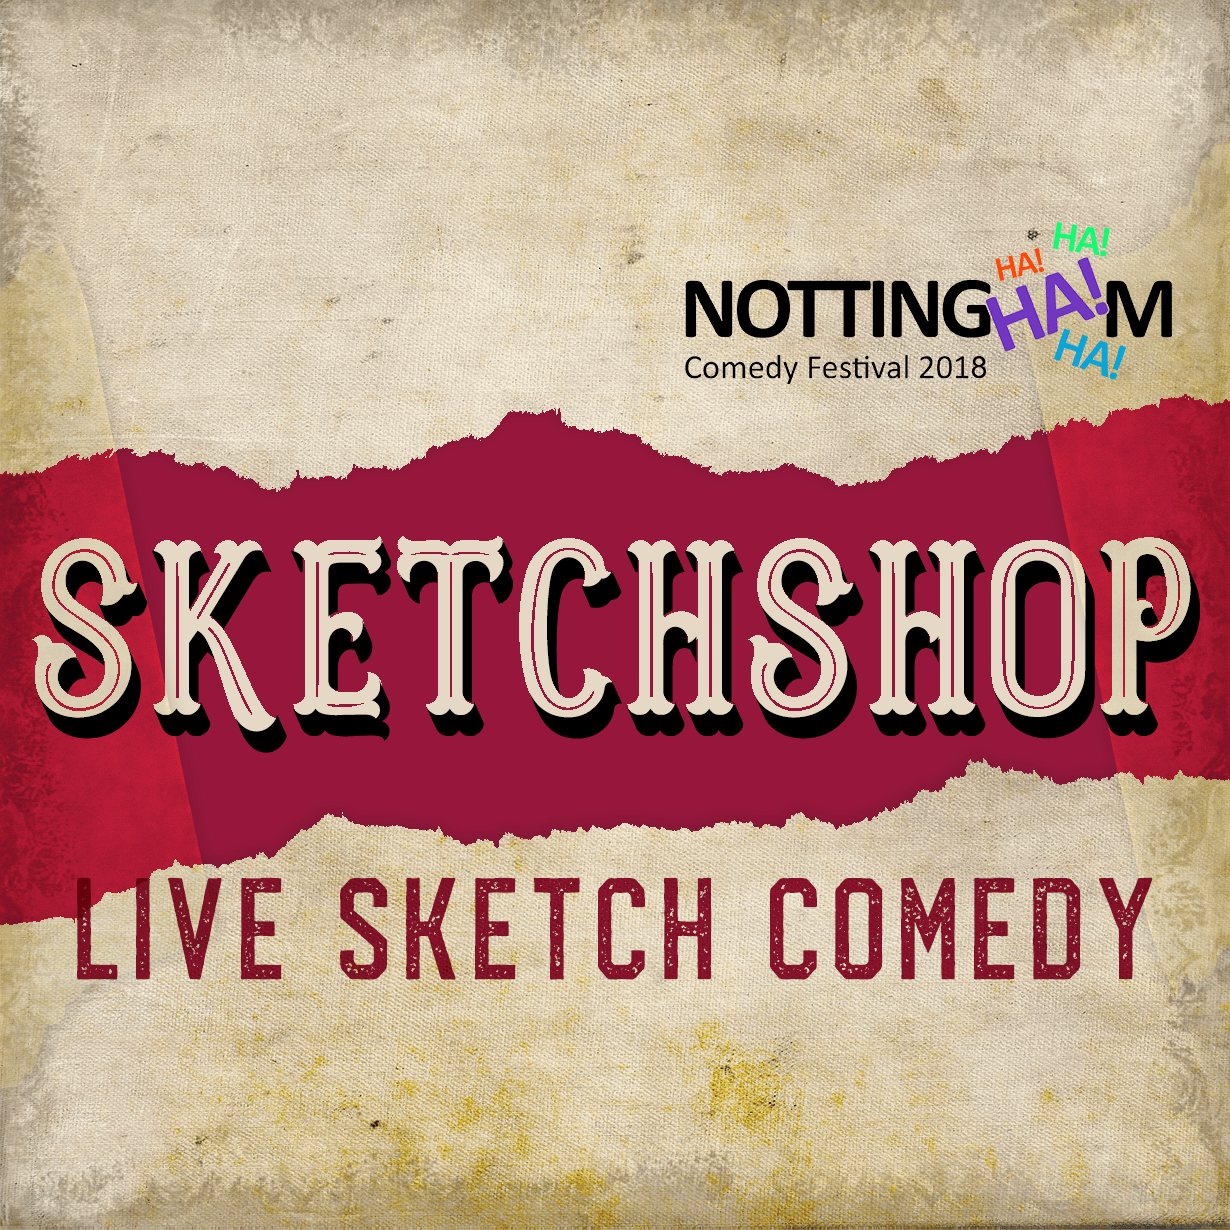 Sketchshop - Live Sketch Comedy at Nottingham Comedy Festival